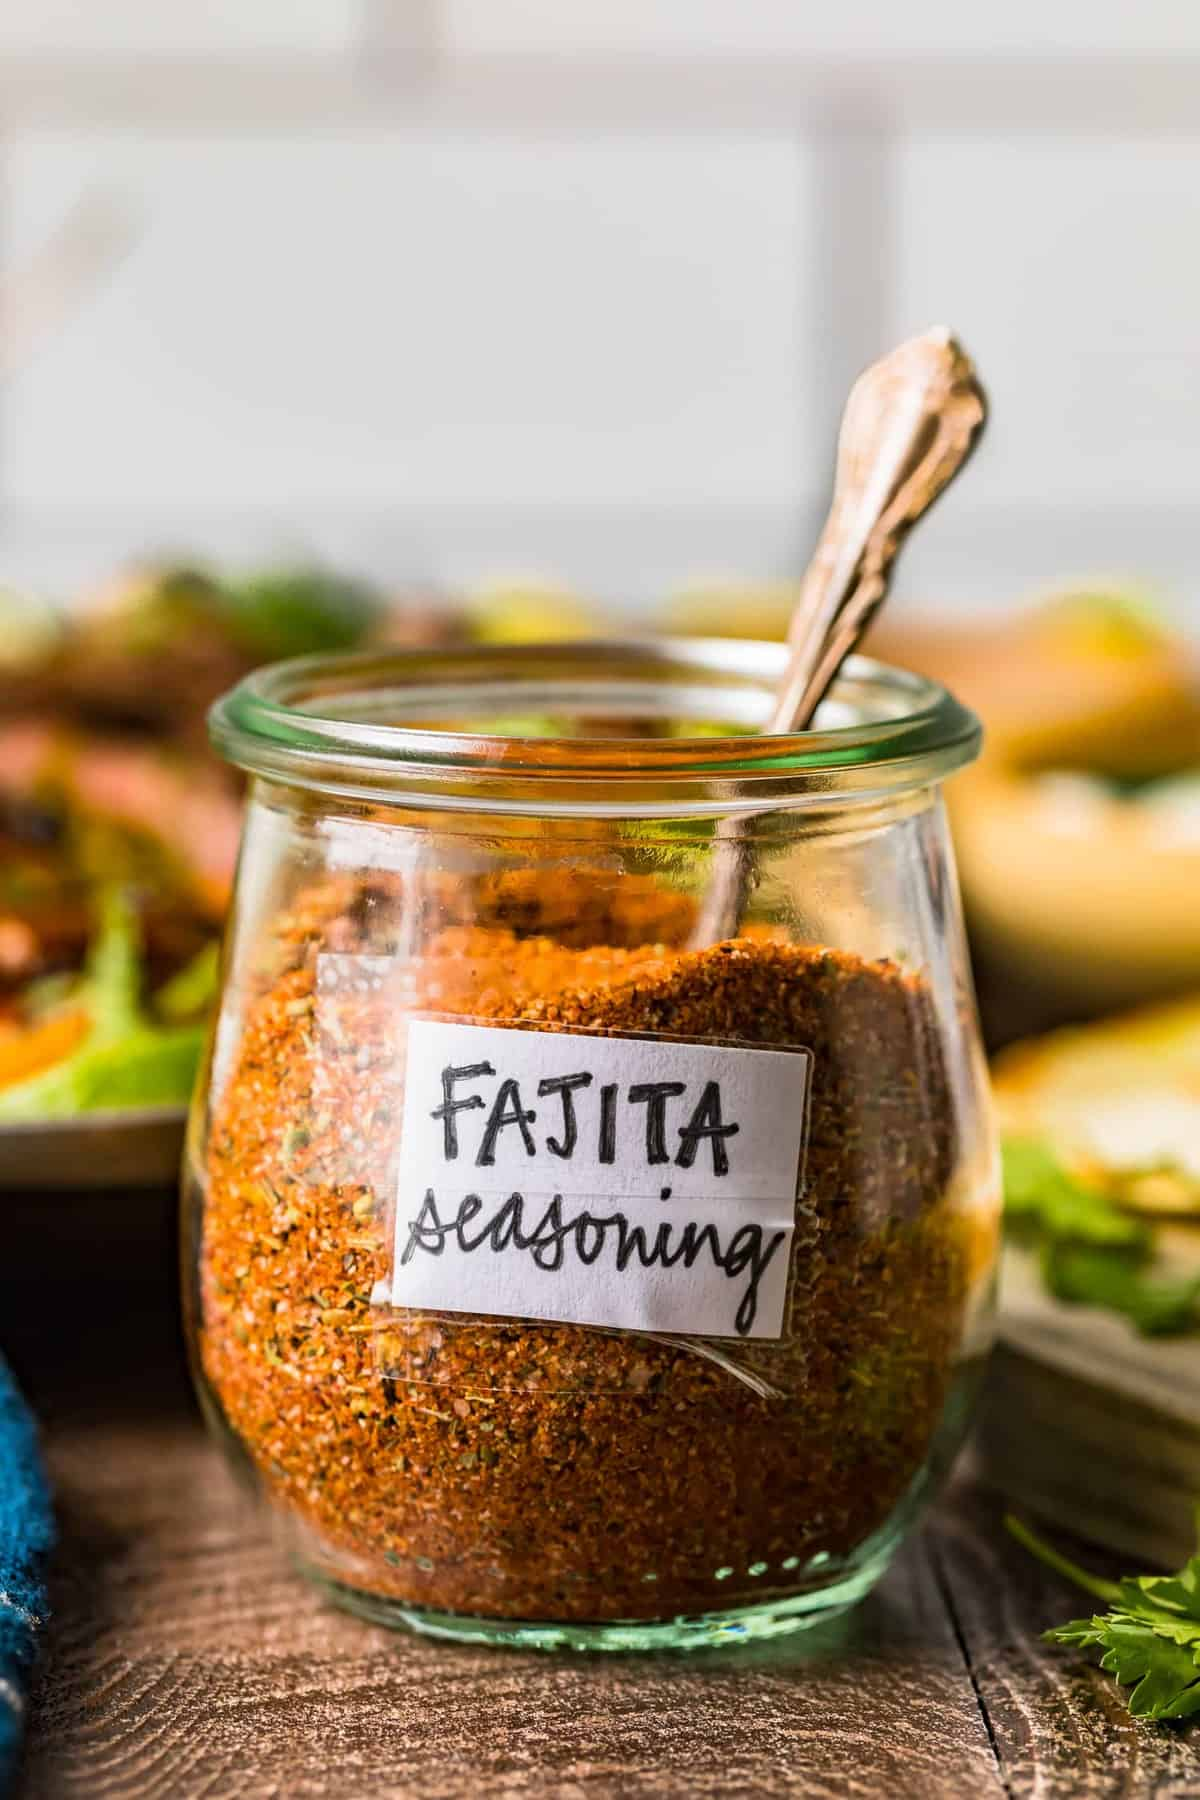 A spoon in a glass jar of fajita seasoning